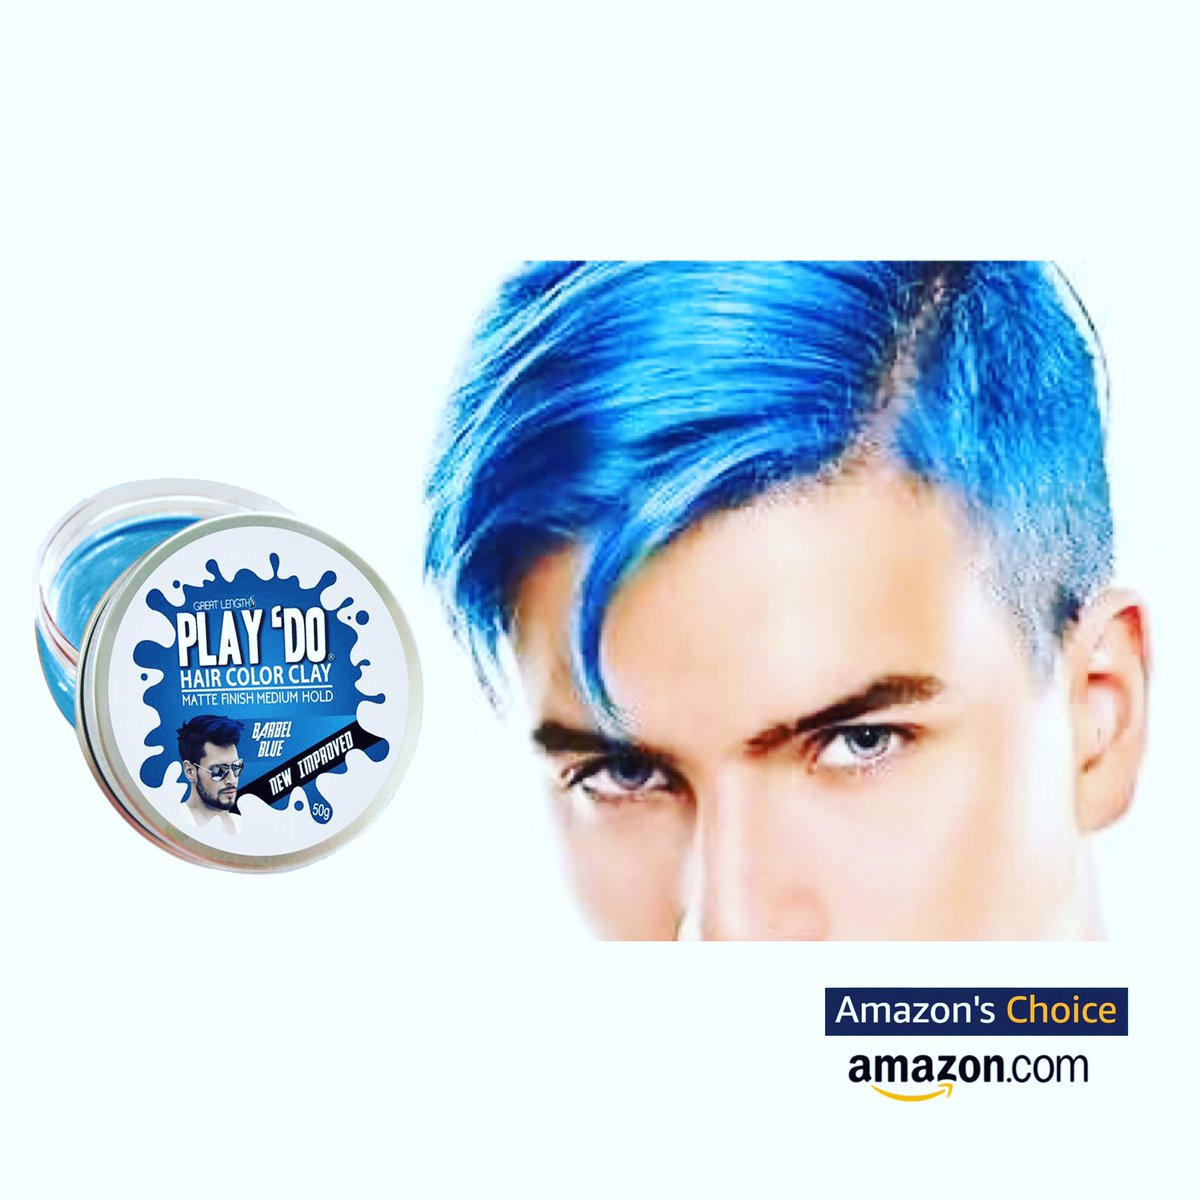 Open your eyes and notice the beauty of this wonderful world#socialsteeze #perfecthair #kidsbraids #kidstyle #kidsstyles #kidsmood #kidsplay #kidsmodel #kidsgram #kidsmodels #kidsfun #kidshair #boyfashion #boystyle #animeboy #girlstyle #bluehairdontcare #bluehairdye pic.twitter.com/wZ96x7DfOQ